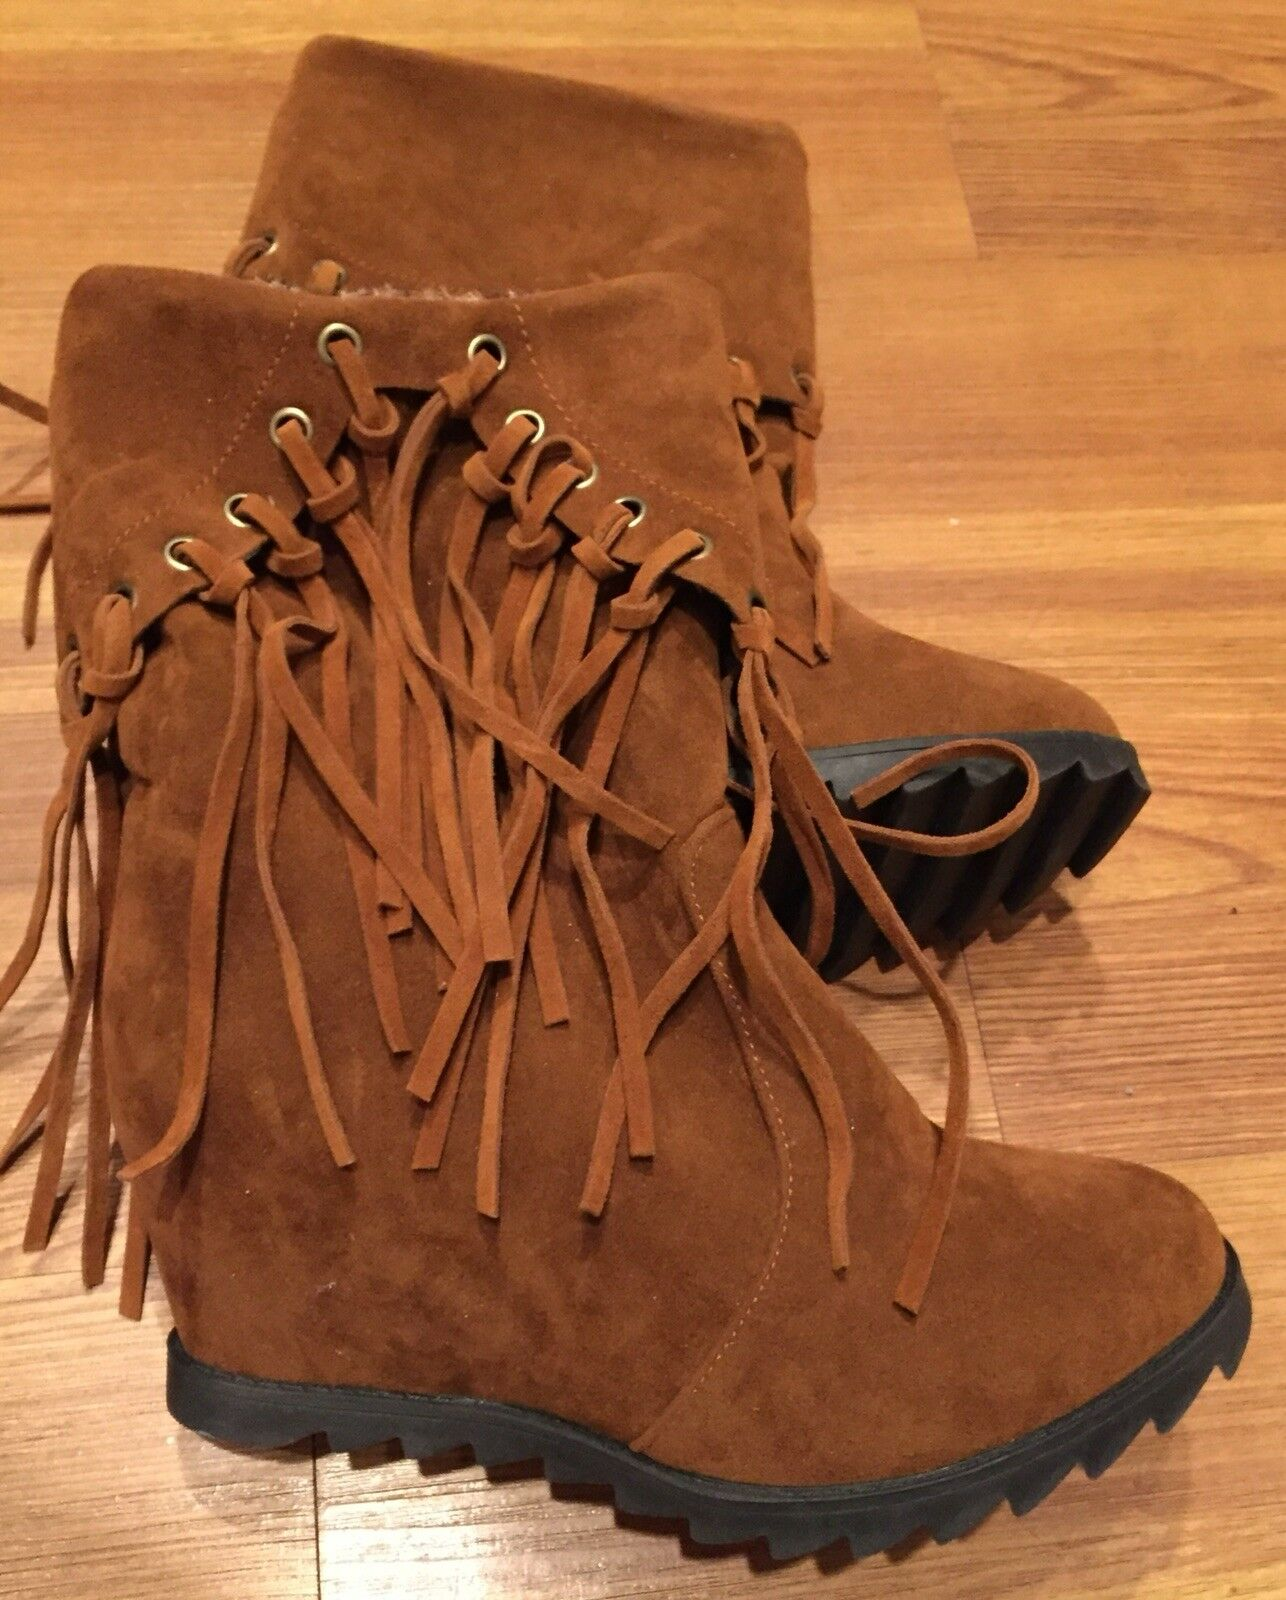 WOWLK Suede-Like Chestnut Fringed Winter Boots InnerWedge w Faux Leopard SZ9